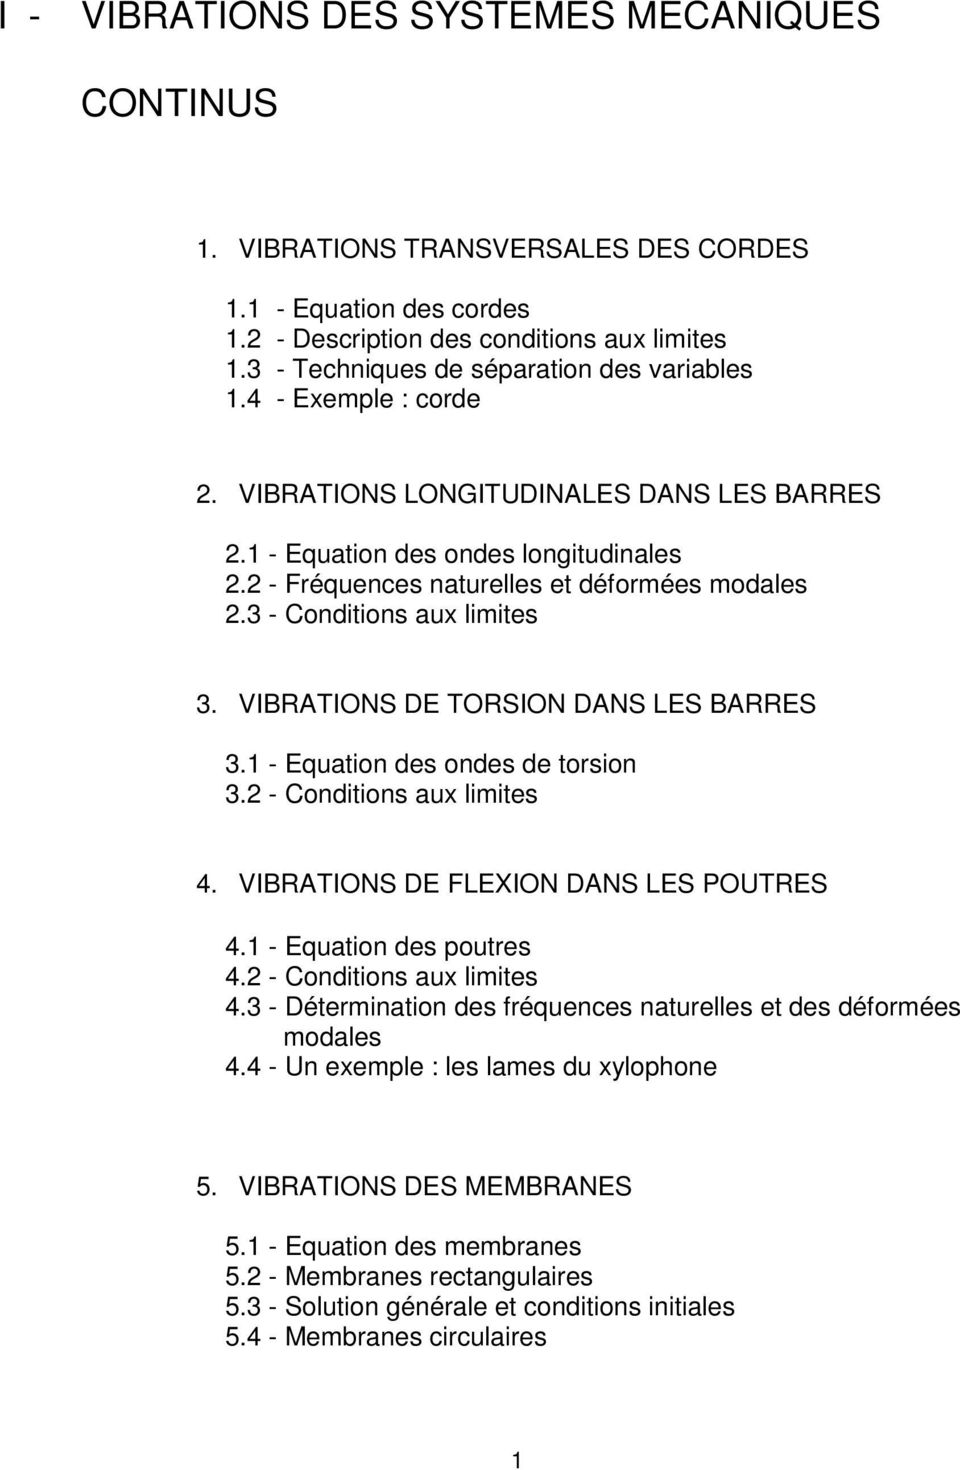 VIBRATIONS DE TORSION DANS LES BARRES 3. - Equatio ds ods d torsio 3. - Coditios au imits. VIBRATIONS DE FLEXION DANS LES POUTRES. - Equatio ds outrs. - Coditios au imits.3 - Détrmiatio ds fréqus aturs t ds déformés modas.